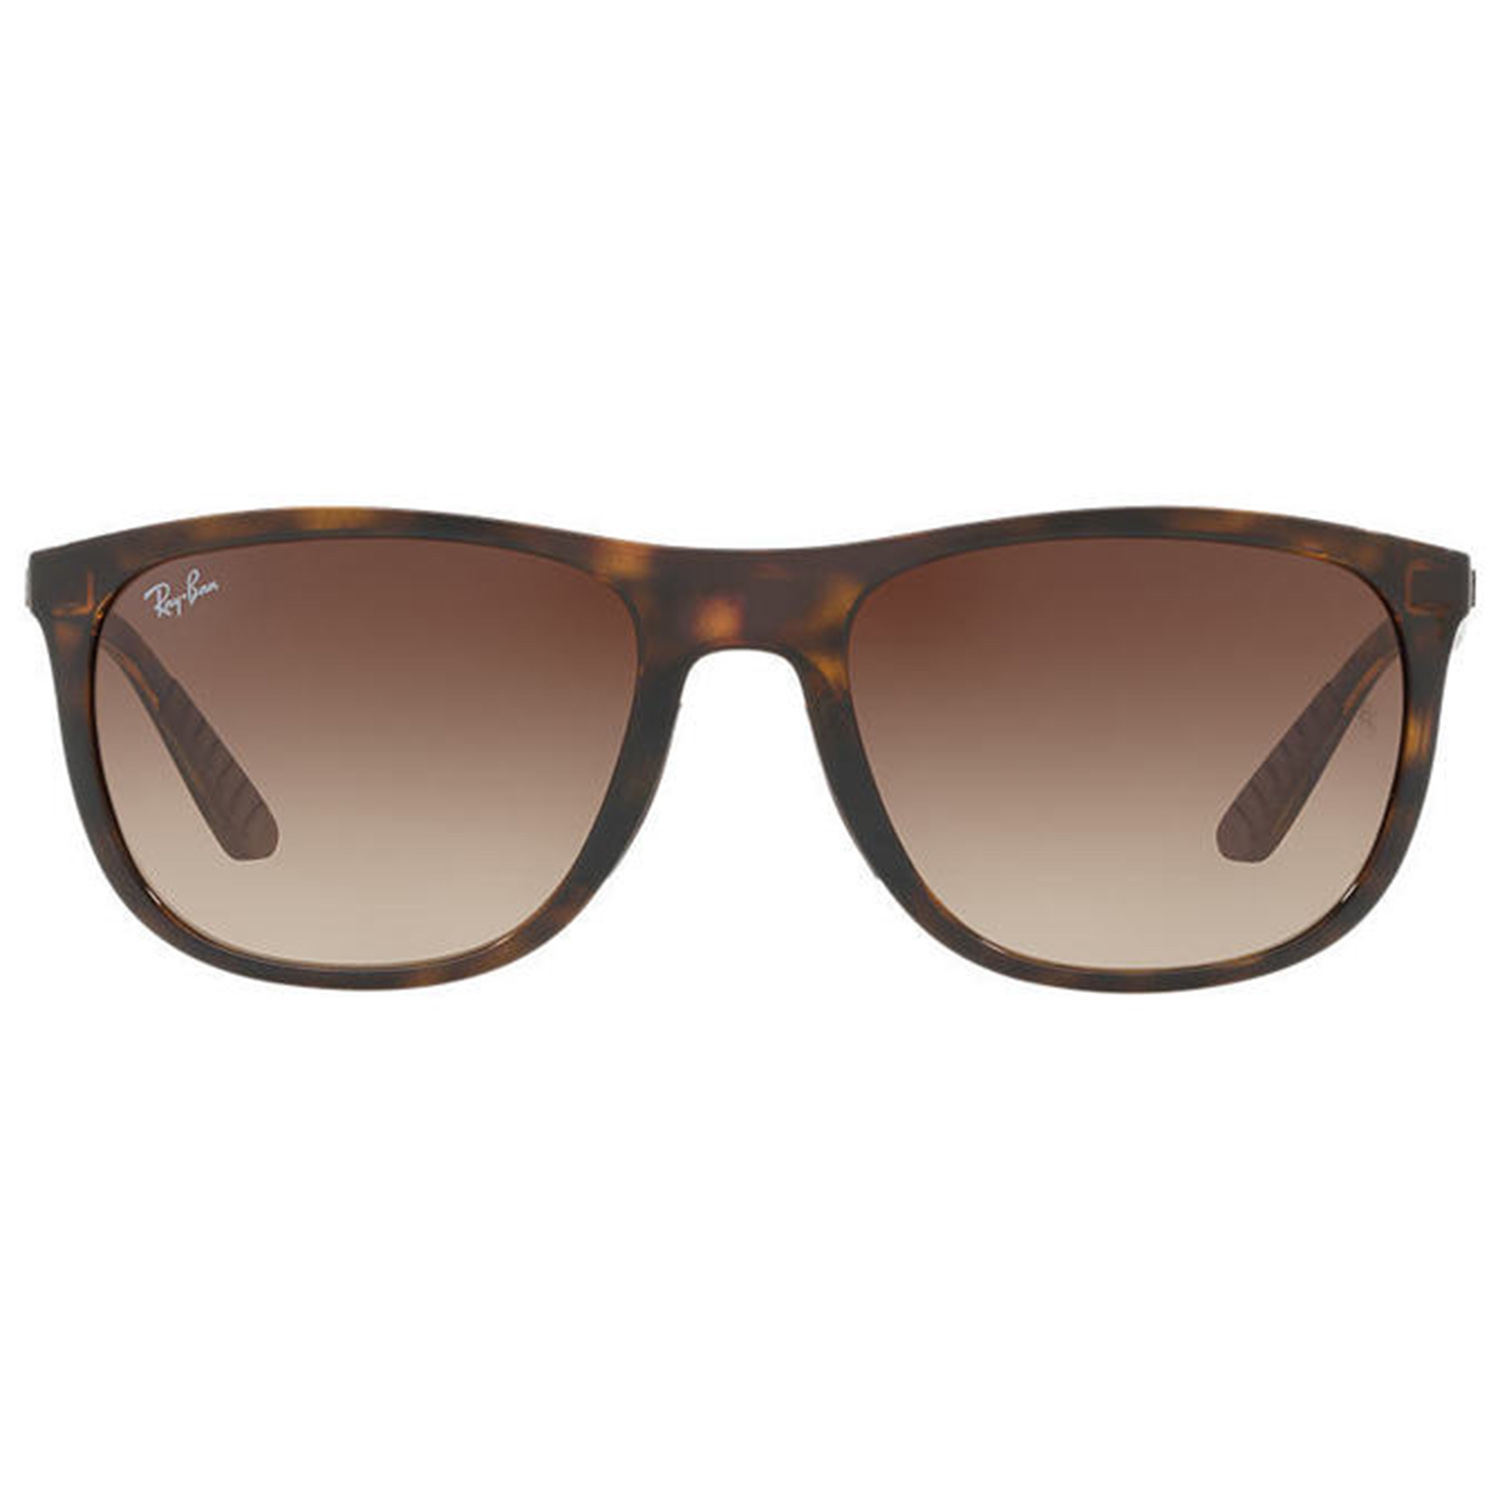 3057d92bd2 Ray-Ban RB4291 Square Sunglasses for Unisex